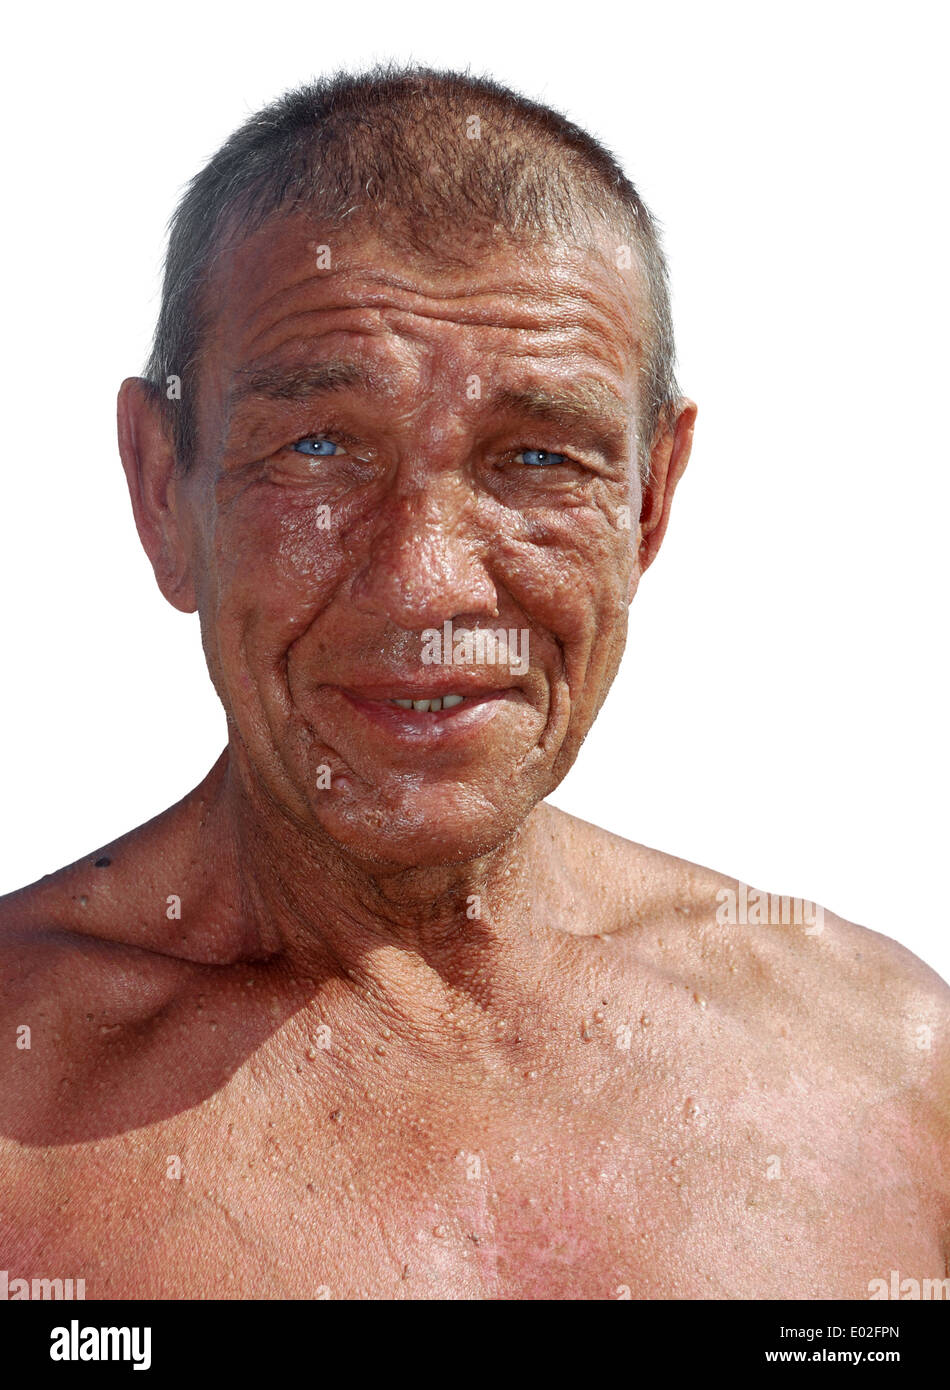 tanned tanned older man with wrinkles and skin problems - Stock Image